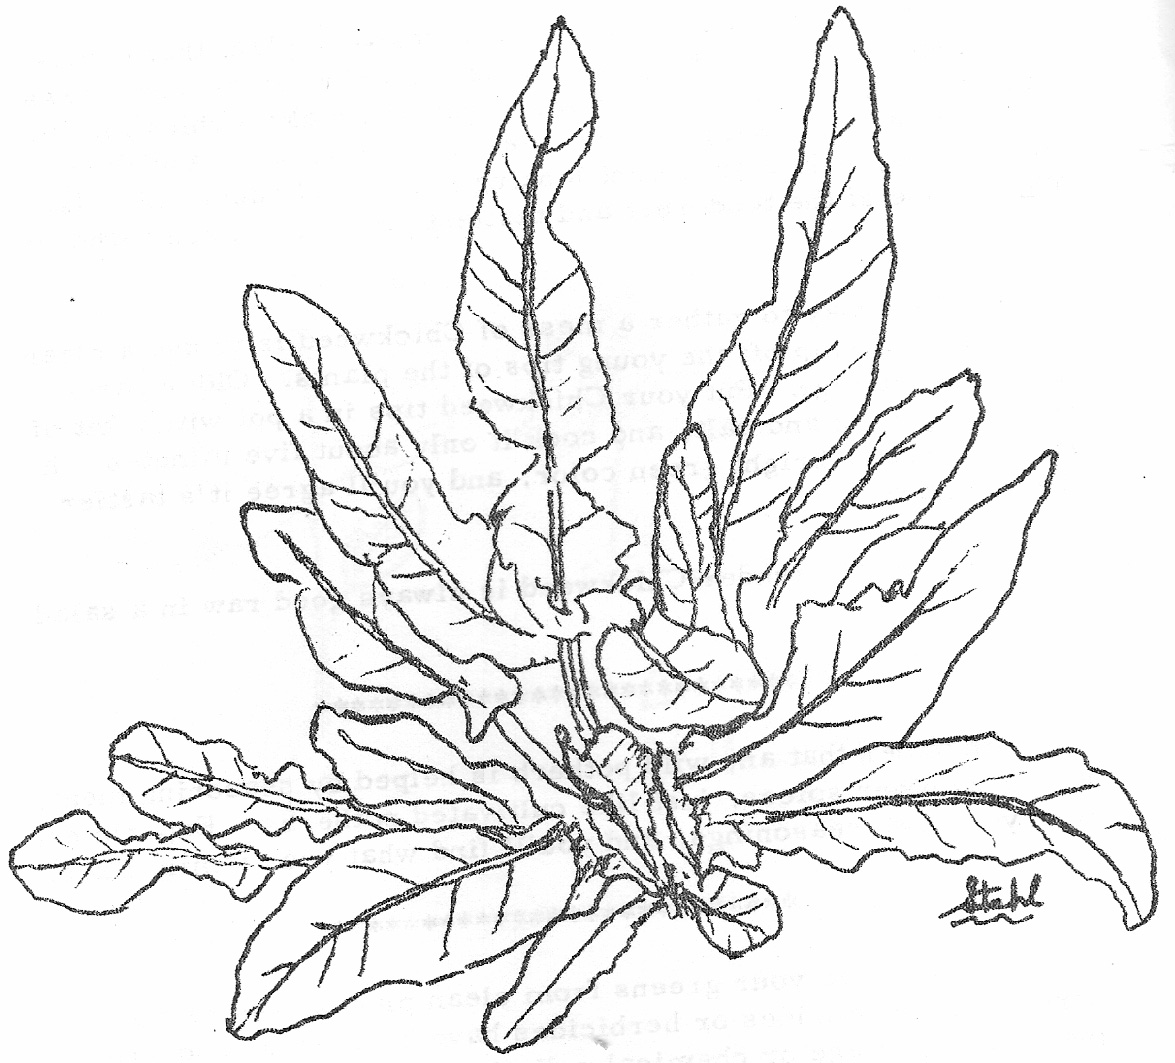 ocean plants coloring pages sea plants drawing at getdrawings free download ocean plants coloring pages